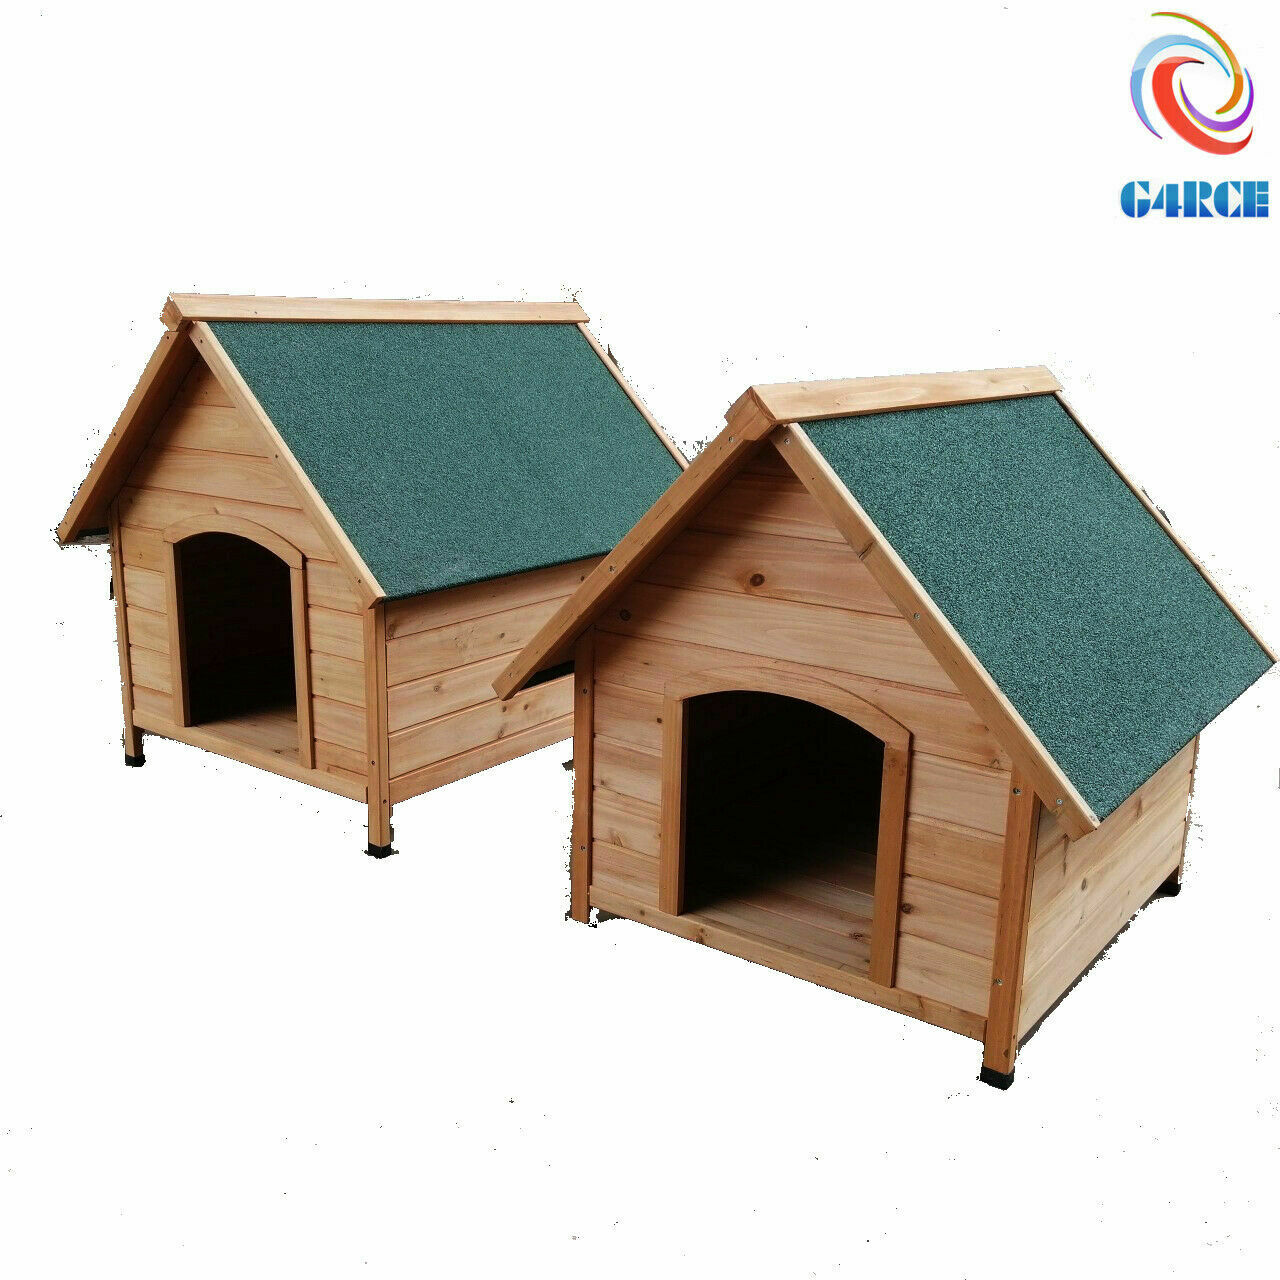 In legno Outdoor Outdoor Outdoor Indoor Pet House Canile Rifugio Den con APICE Tetto Med Large ac6fc3